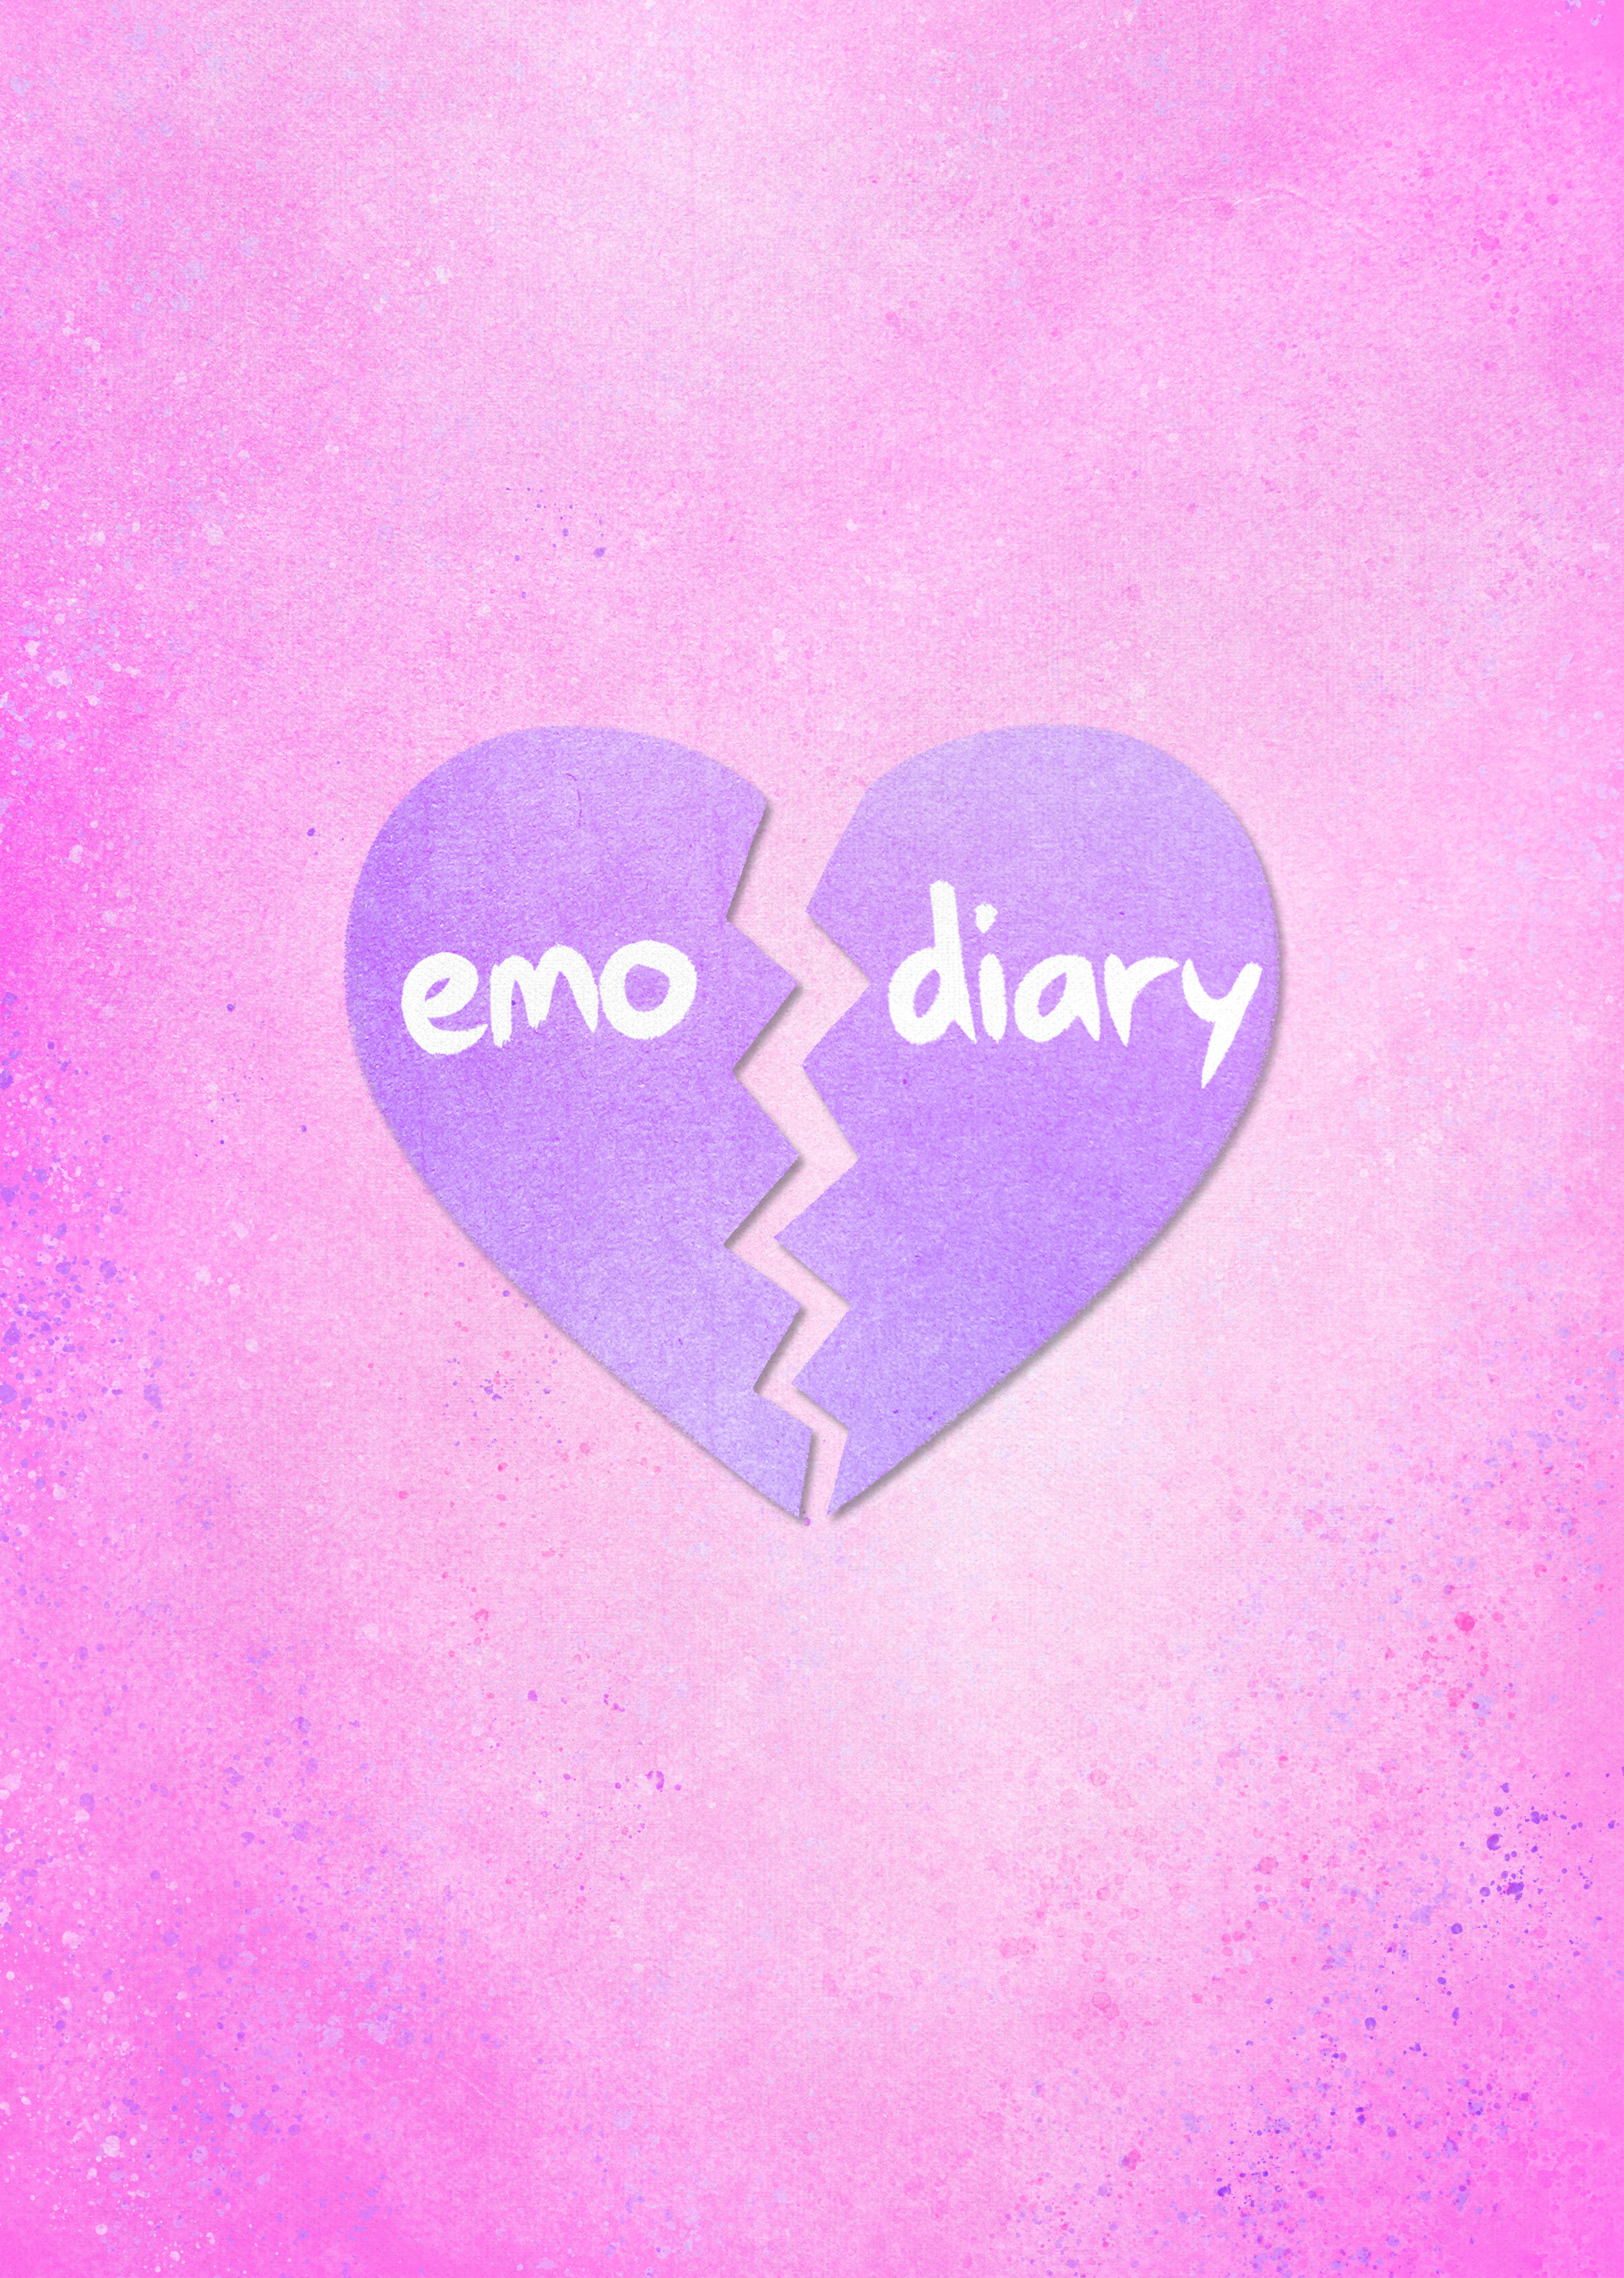 Animations for Emo Diary Instagram and Twitter